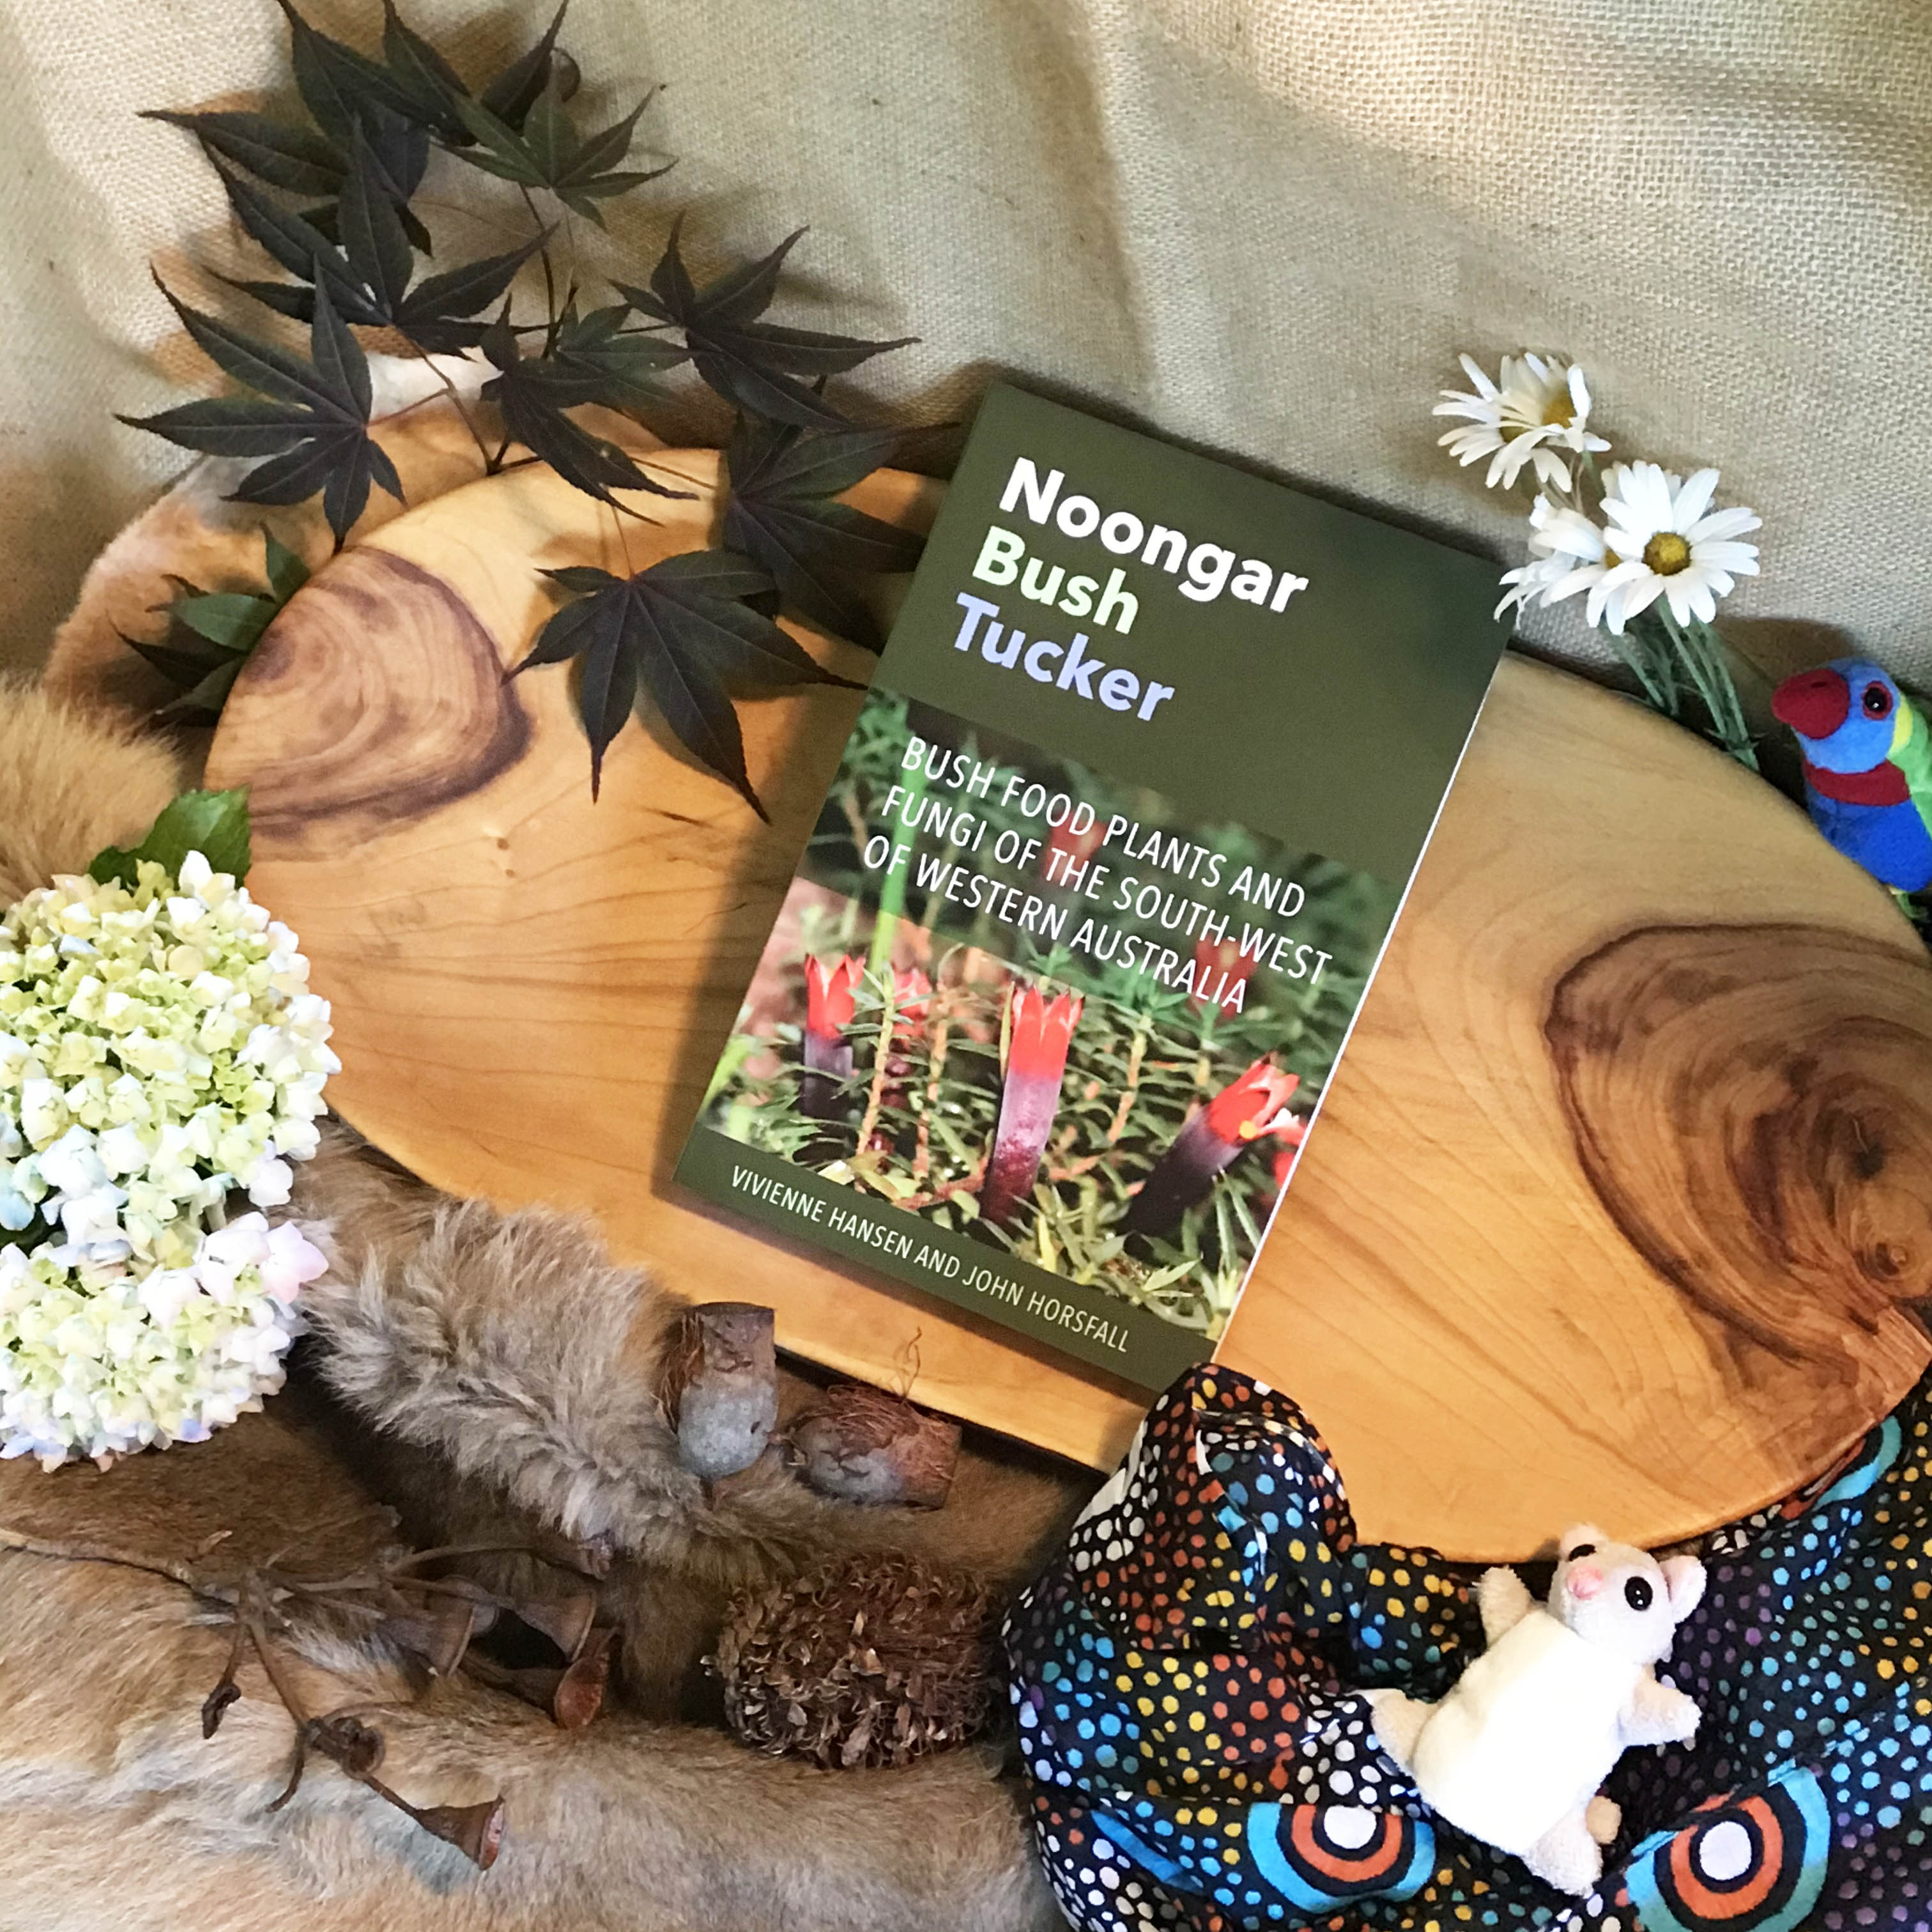 Noongar Bush Tucker Bush Food Plants and Fungi of the South-West of Western Australia - Vivienne Hansen